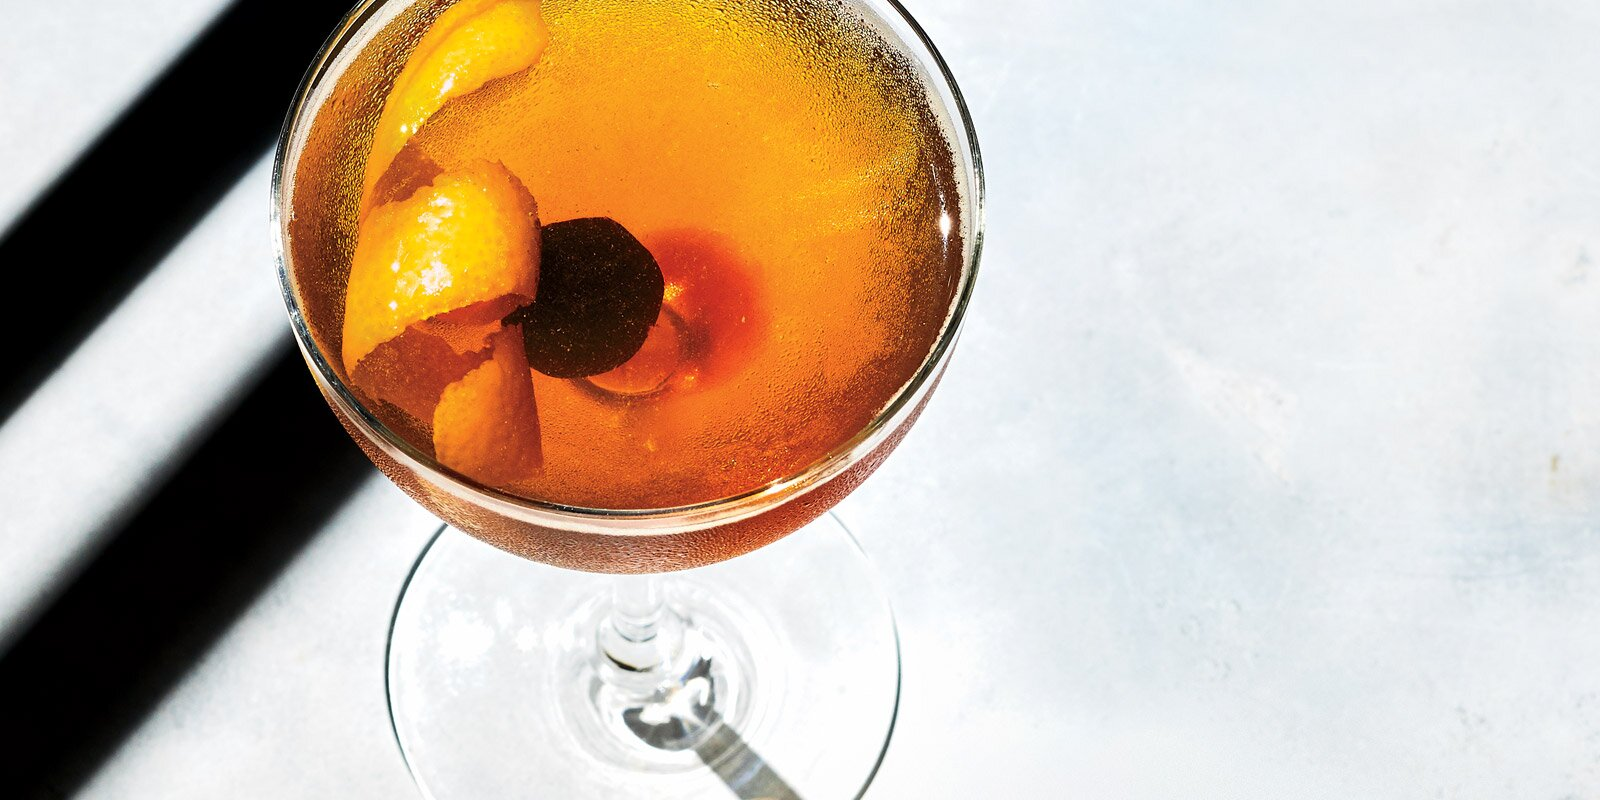 7 Rye Cocktails That Will Warm You Up This Fall